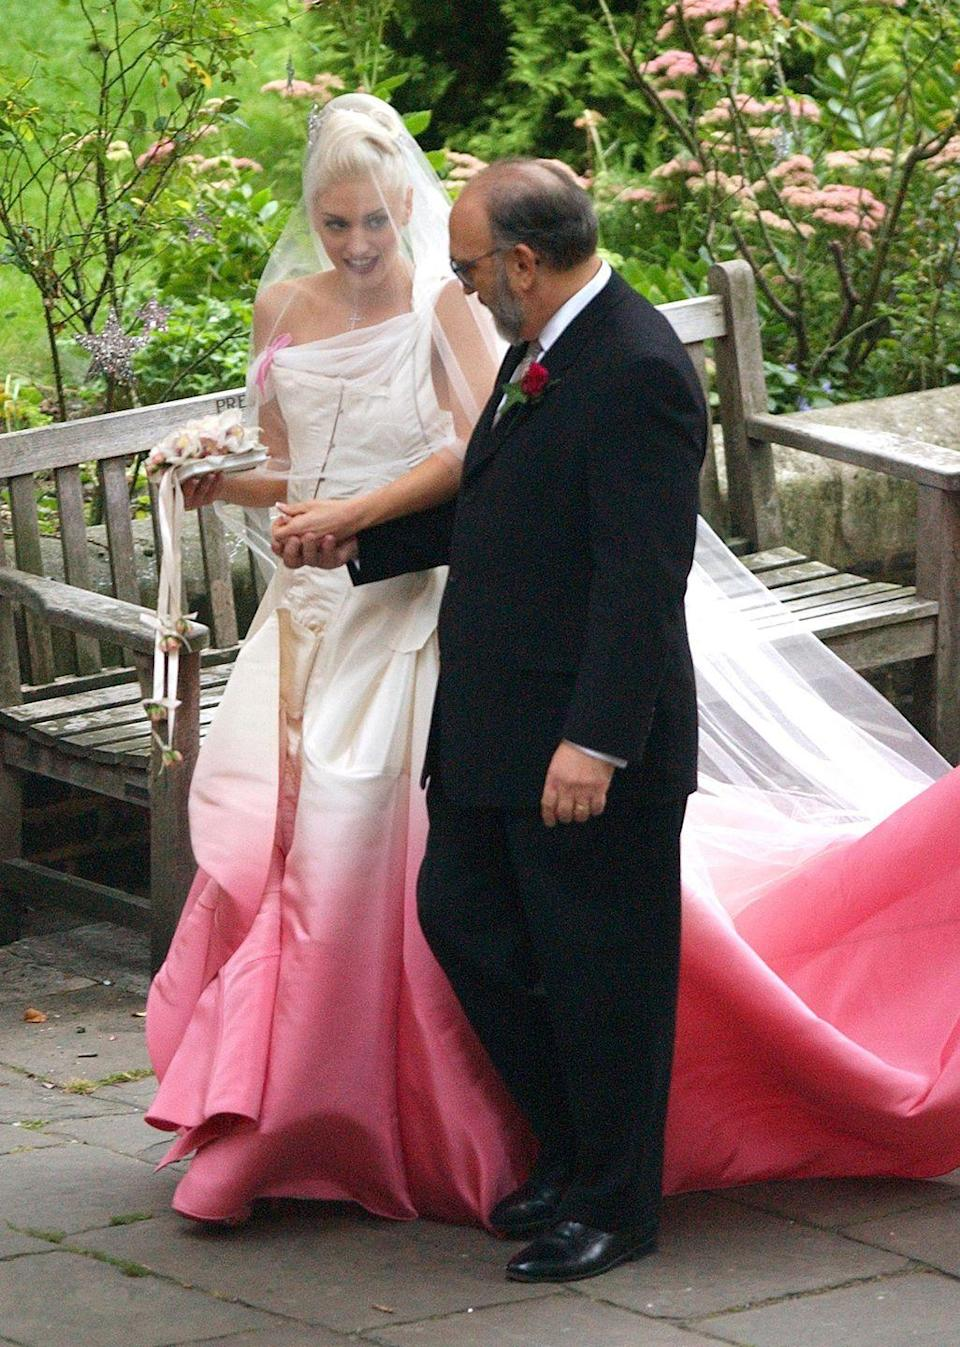 <p>One of the most famous celeb colourful wedding dresses has to be Gwen Stefani's mesmerising bright pink dip-dyed dress worn back in 2002 for her wedding to Gavin Rossdale.</p>